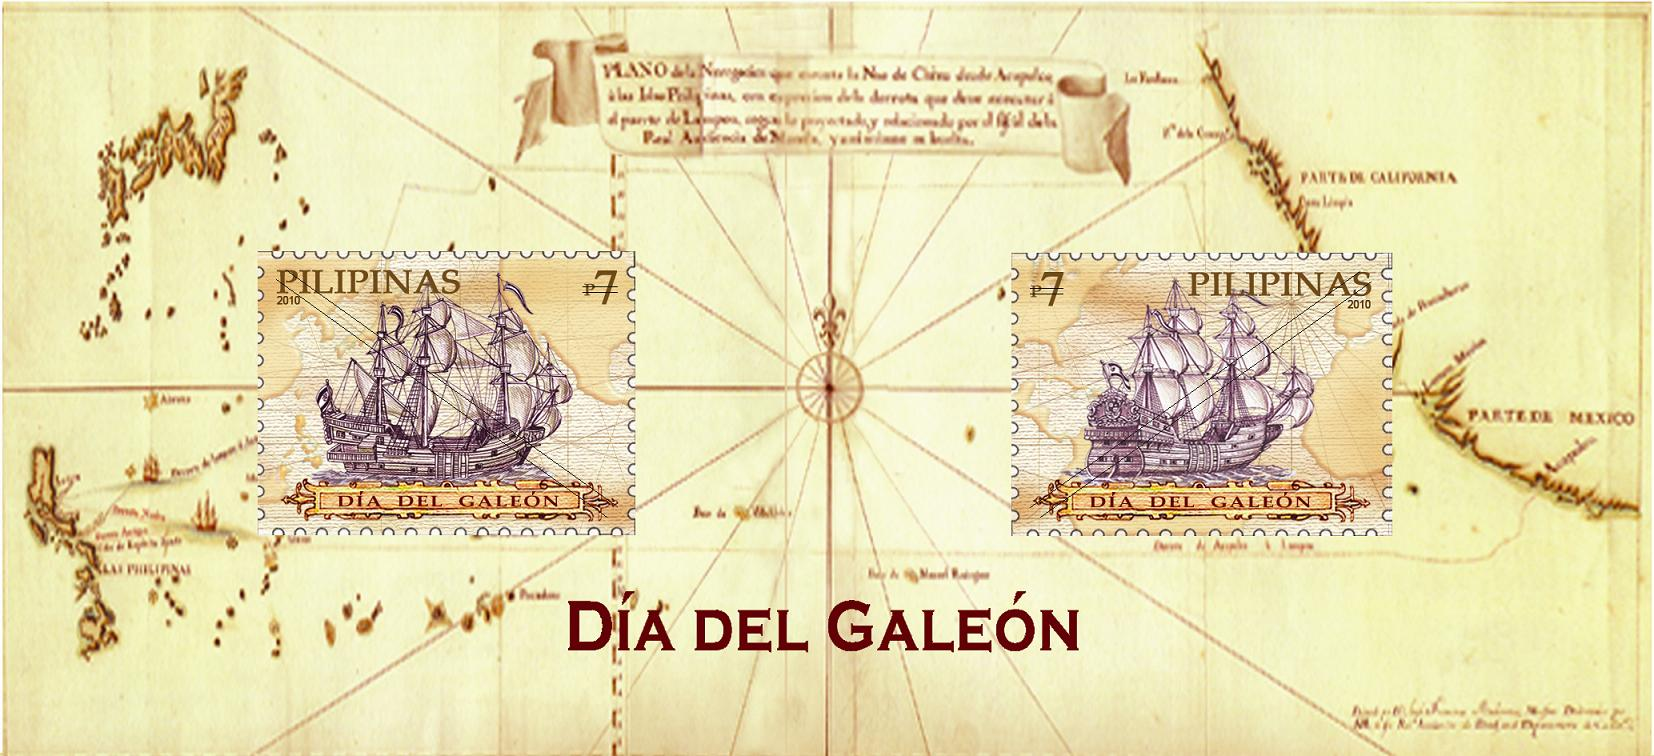 Philippine philately commerating the Manila galleon